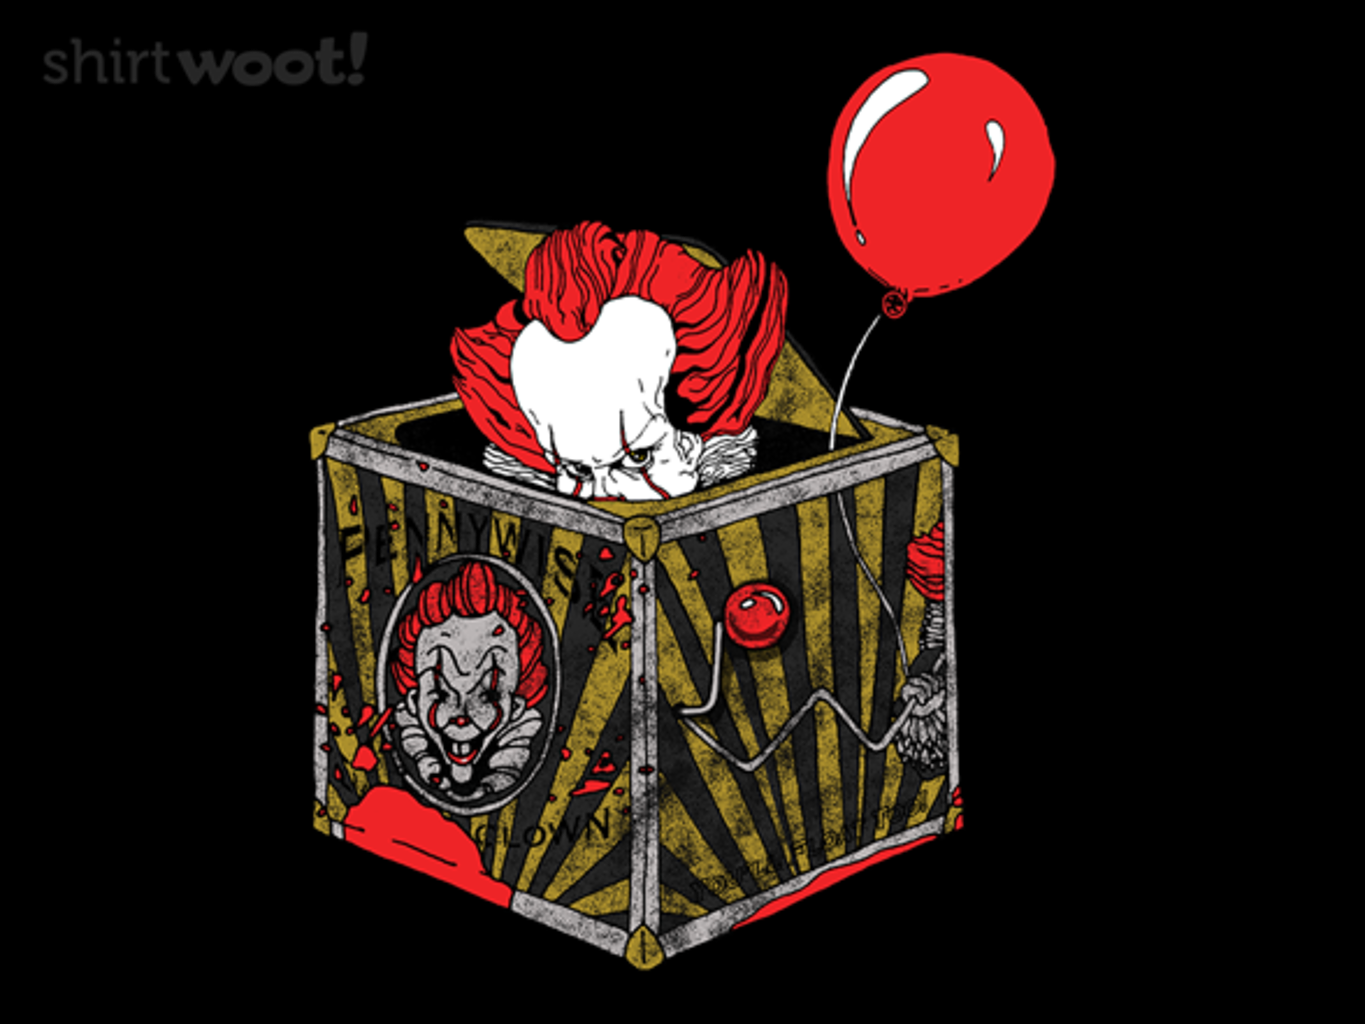 Woot!: Pennywise-in-the-Box